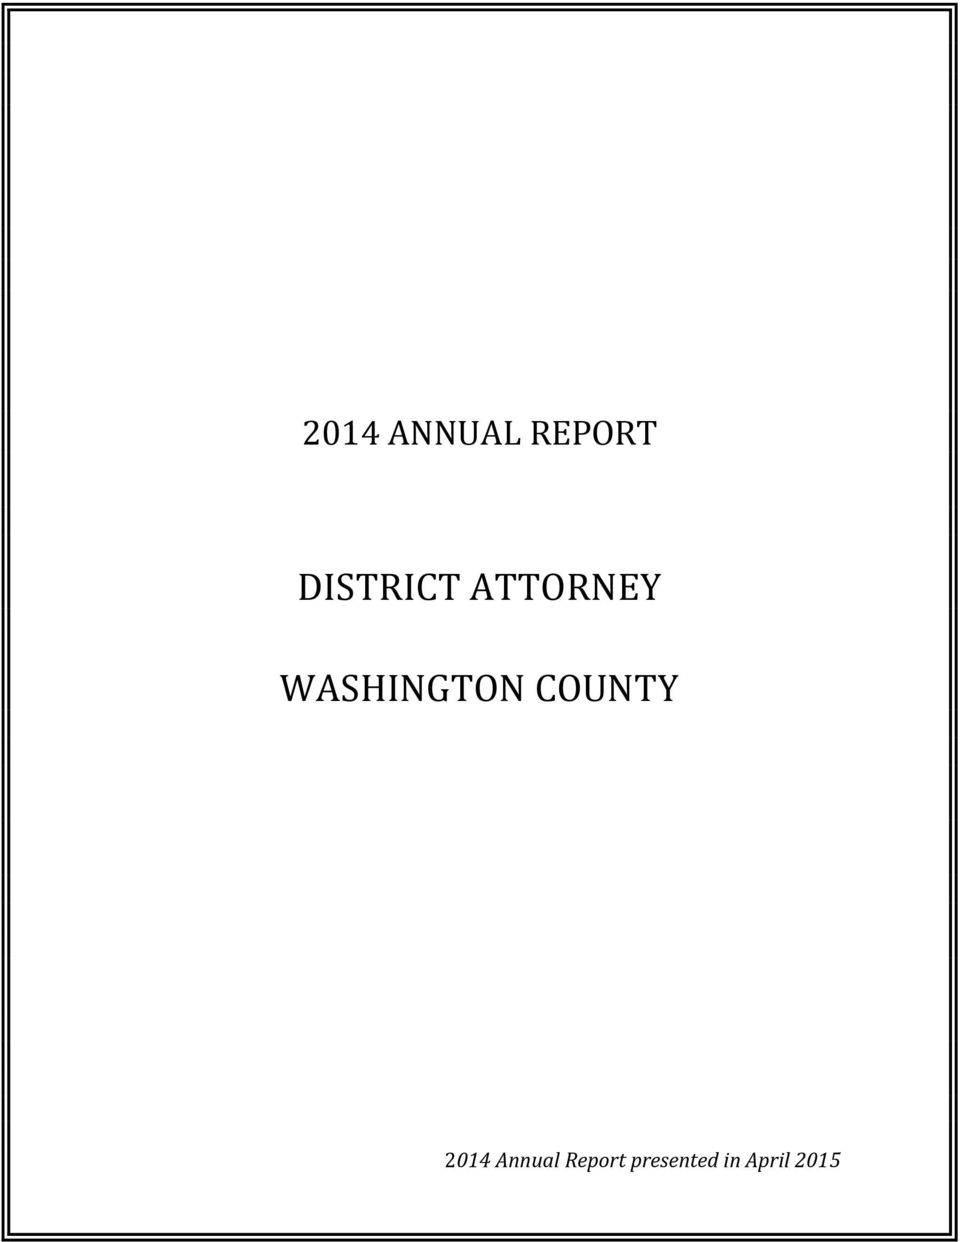 WASHINGTON COUNTY 2014